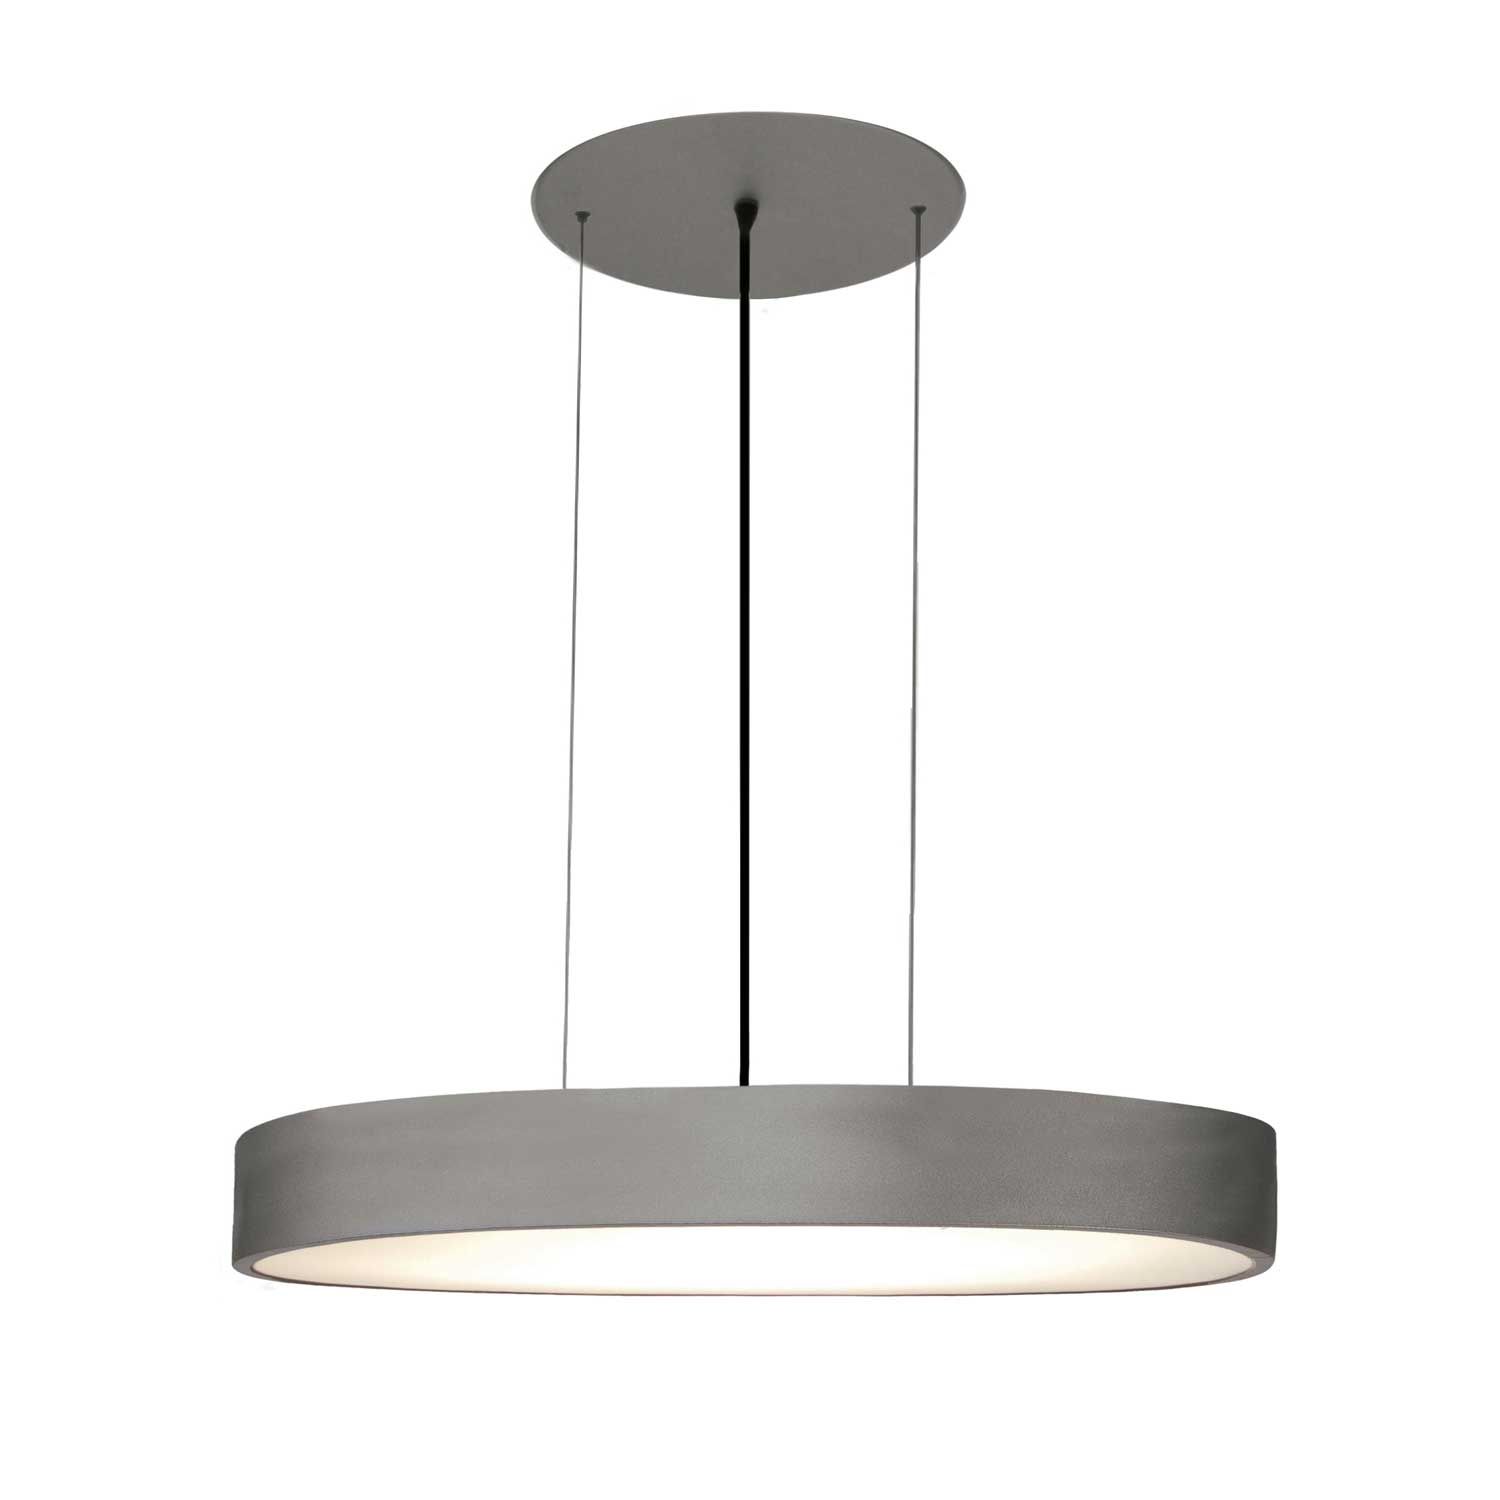 Store Light Fixtures: Lightology Suspension Pendant Retail Store Lighting Light